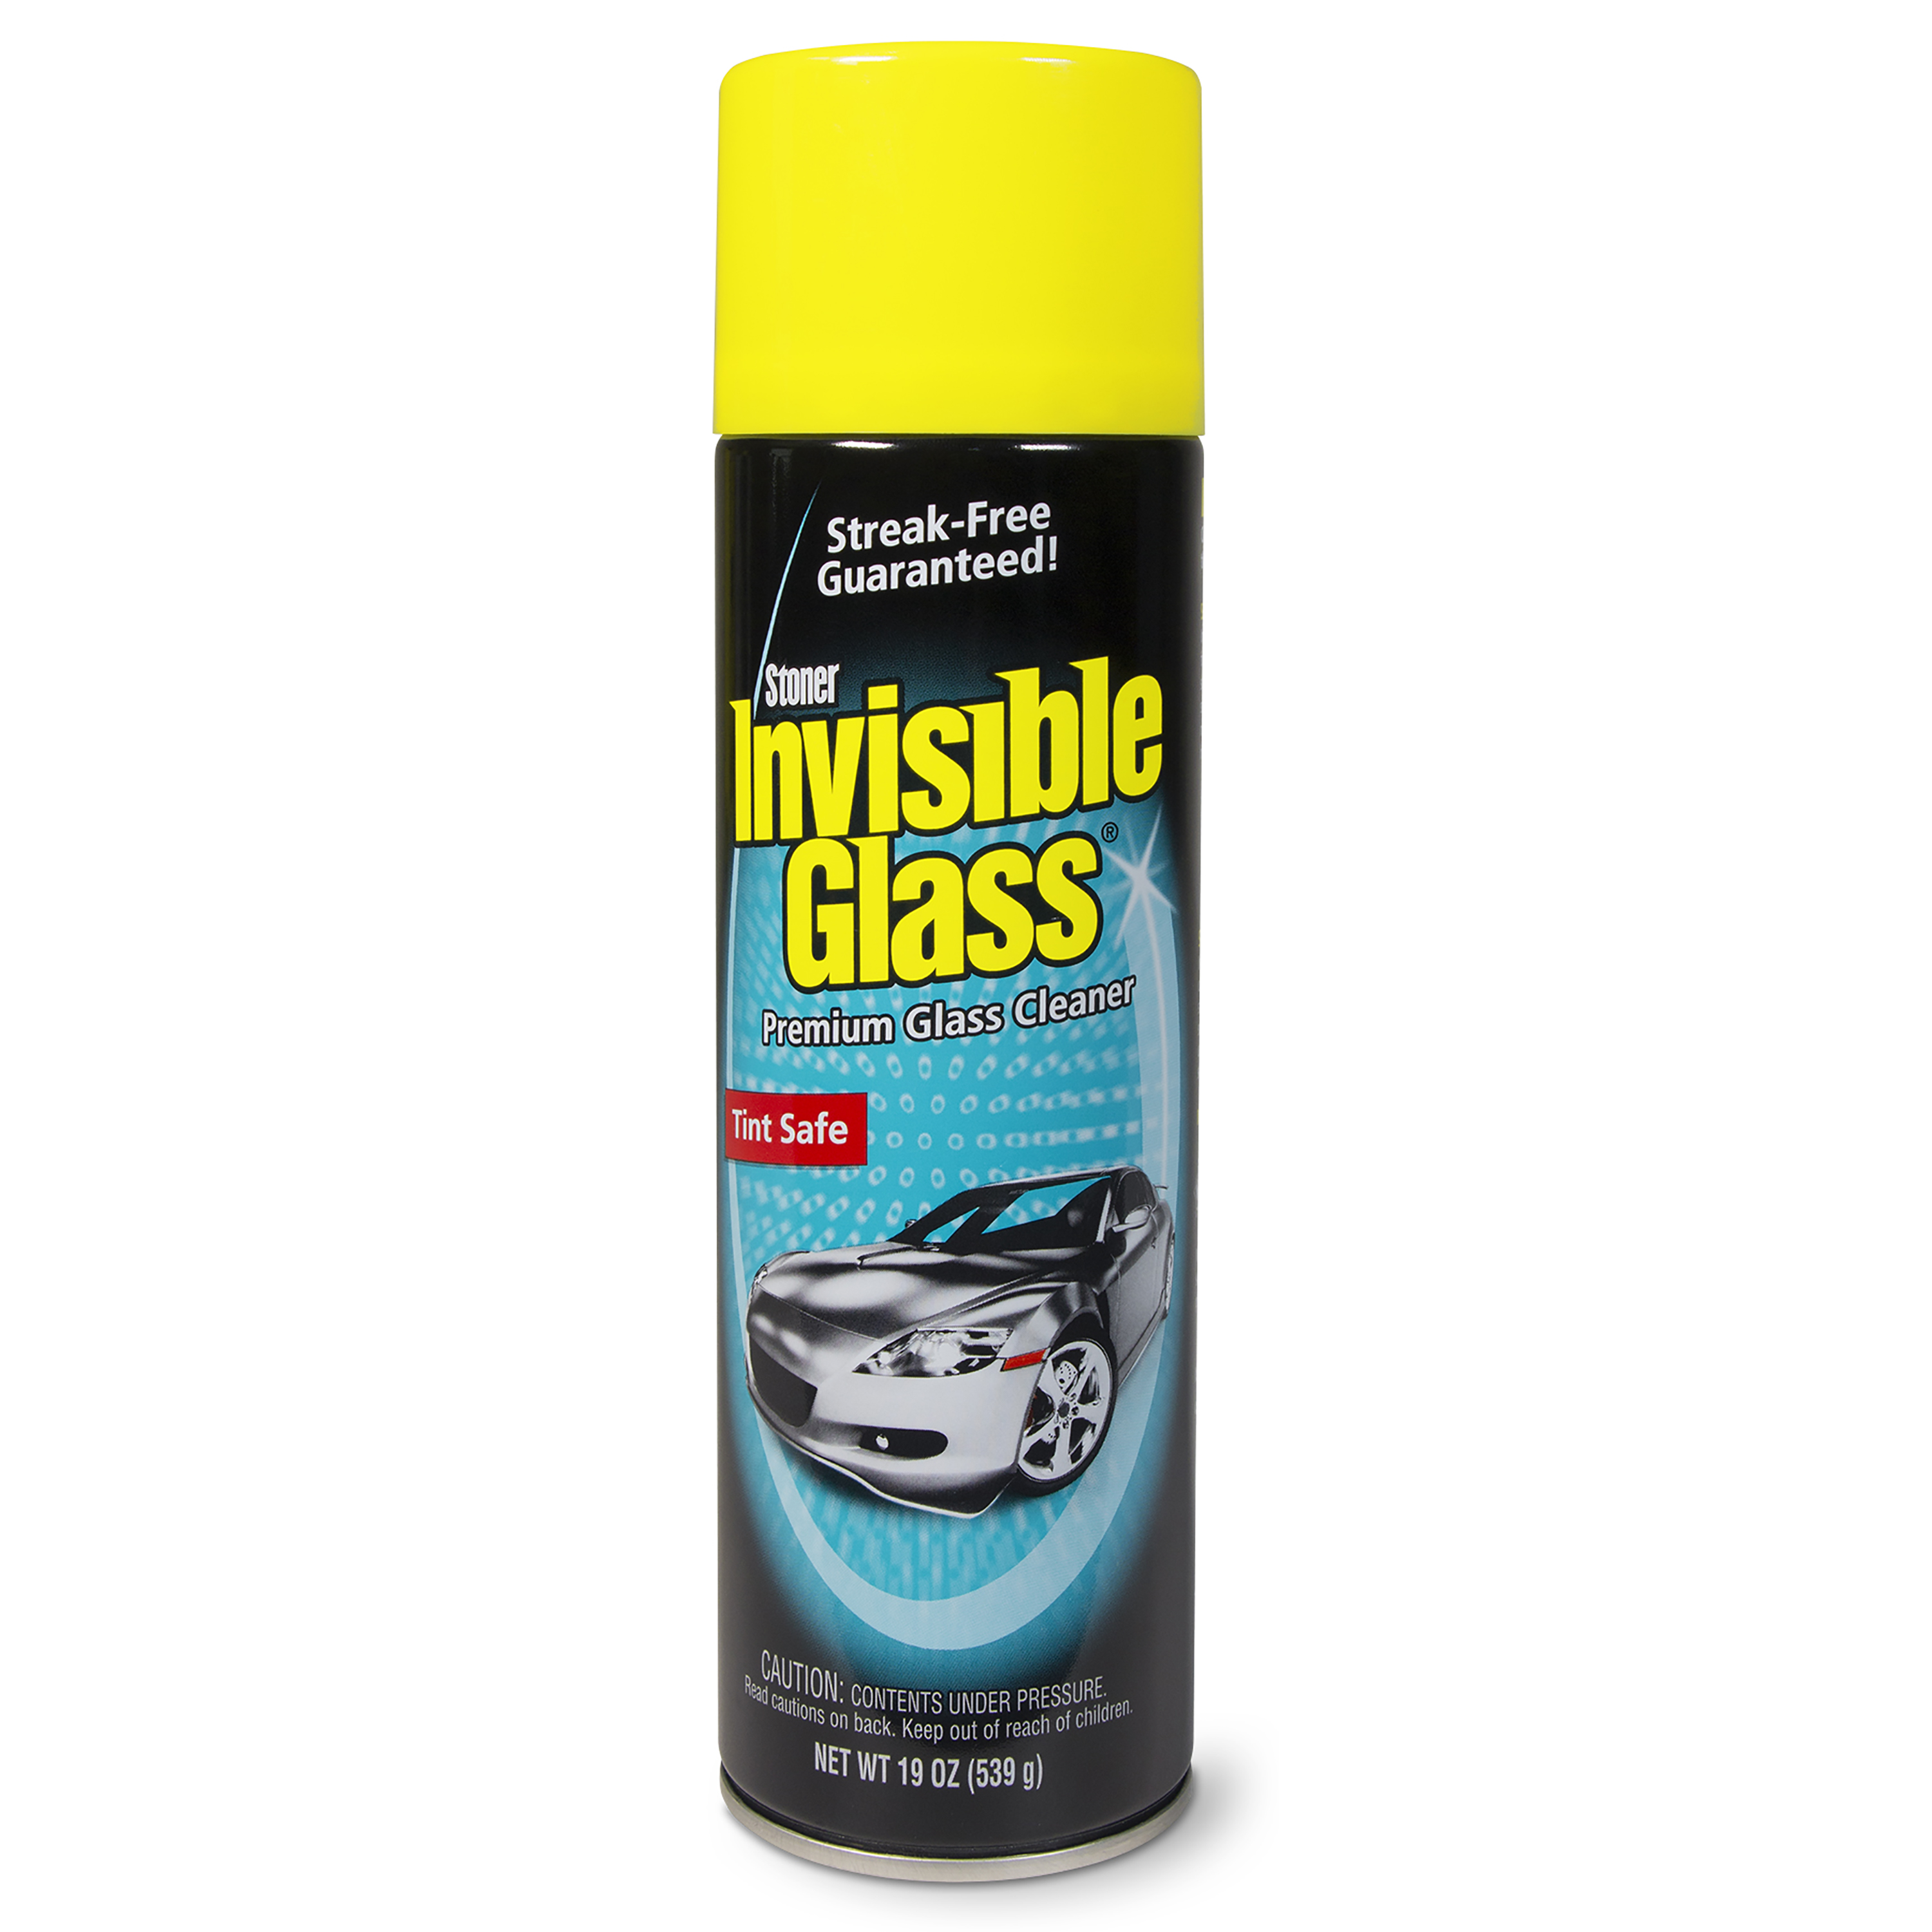 Invisible Glass Automotive Glass Cleaner, 19 oz